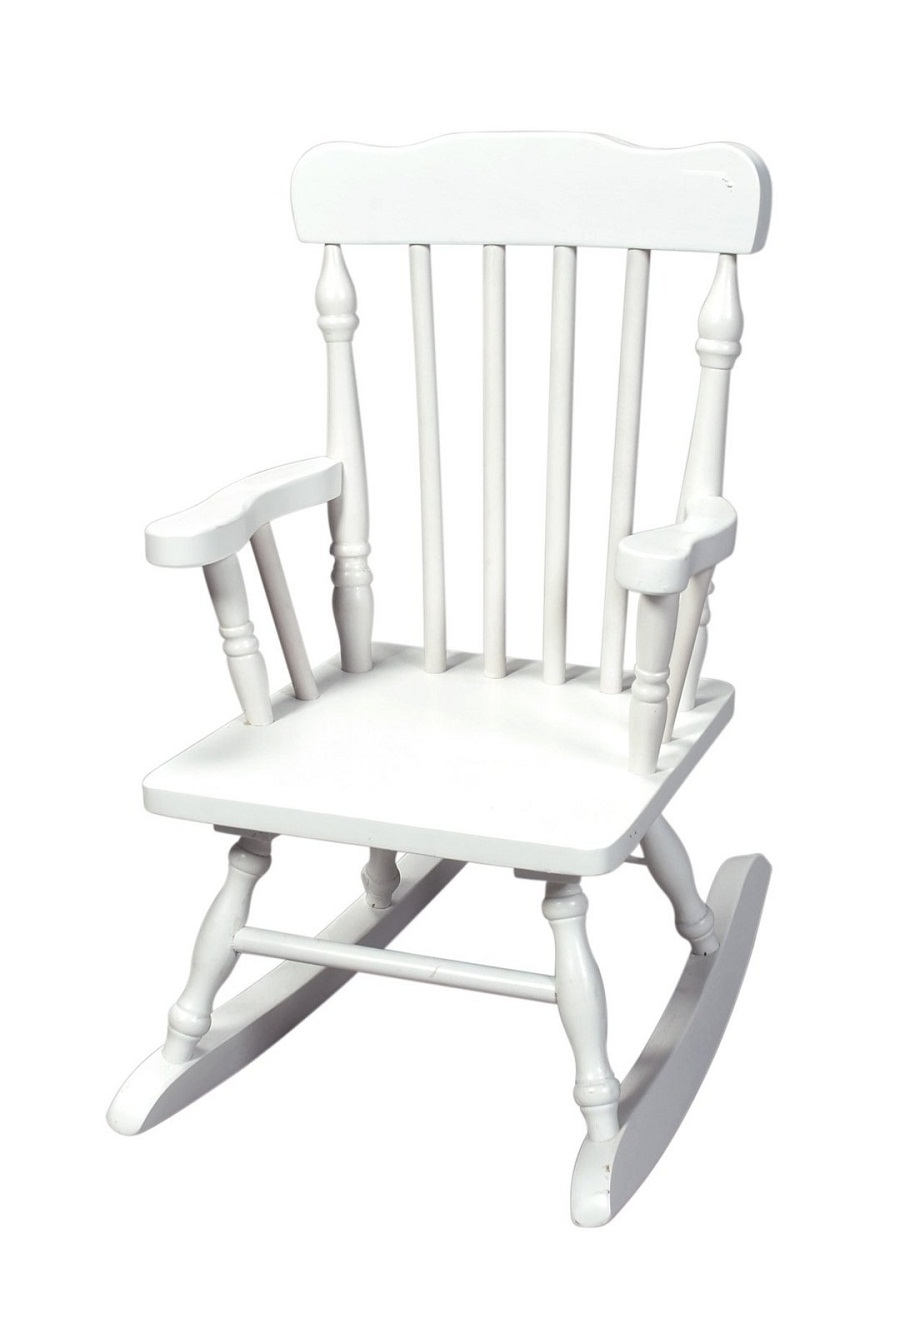 Image of: Popular Childs Rocking Chair